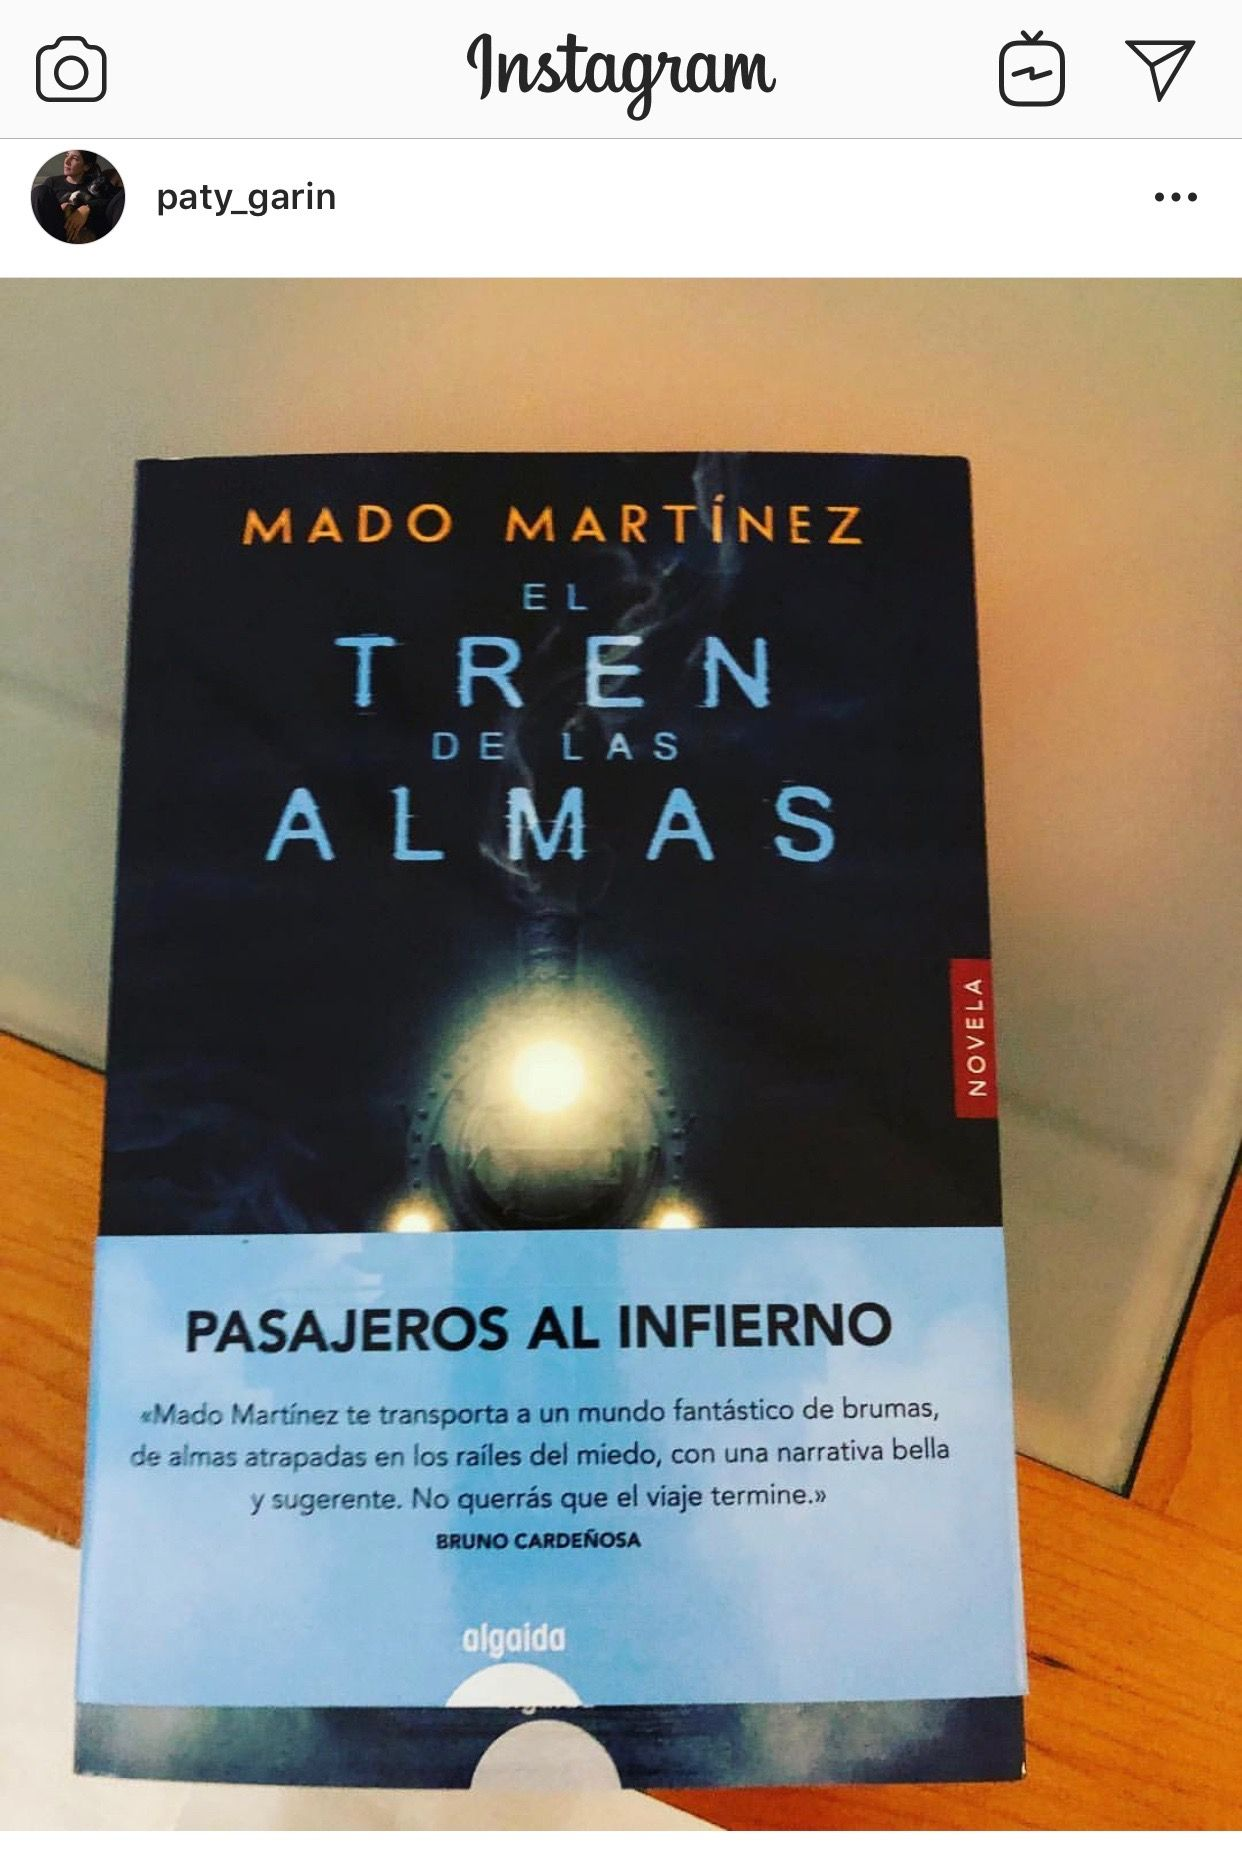 Pin By Mado Martinez On El Tren De Las Almas Book Cover Books Cover